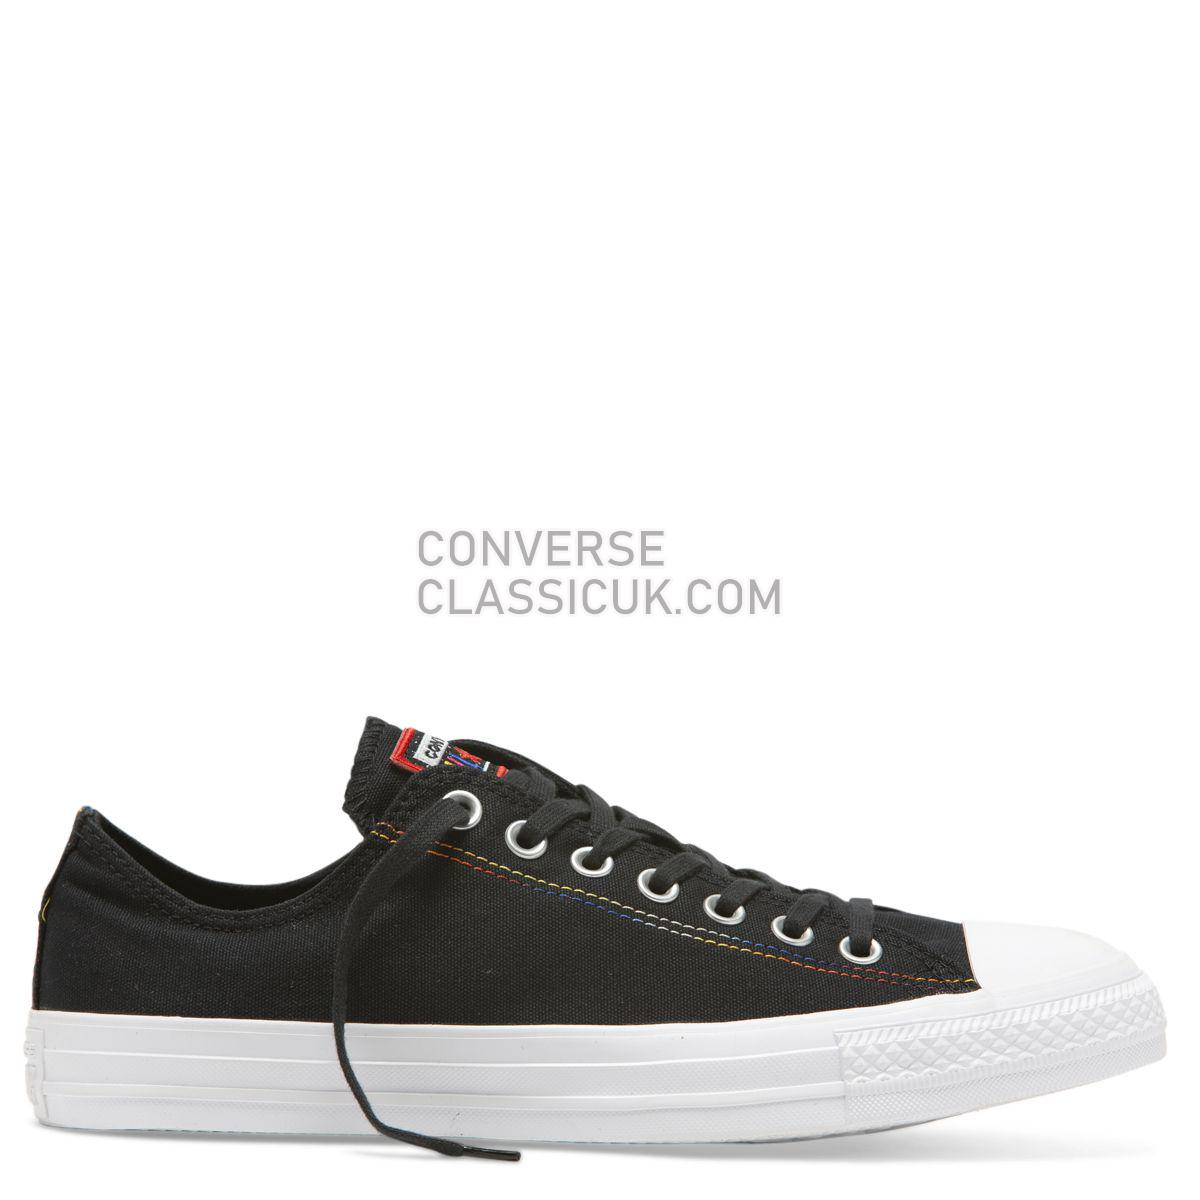 Converse Chuck Taylor All Star Rainbow Low Top Black Mens Womens Unisex 165426 Black/White/Habanero Red Shoes